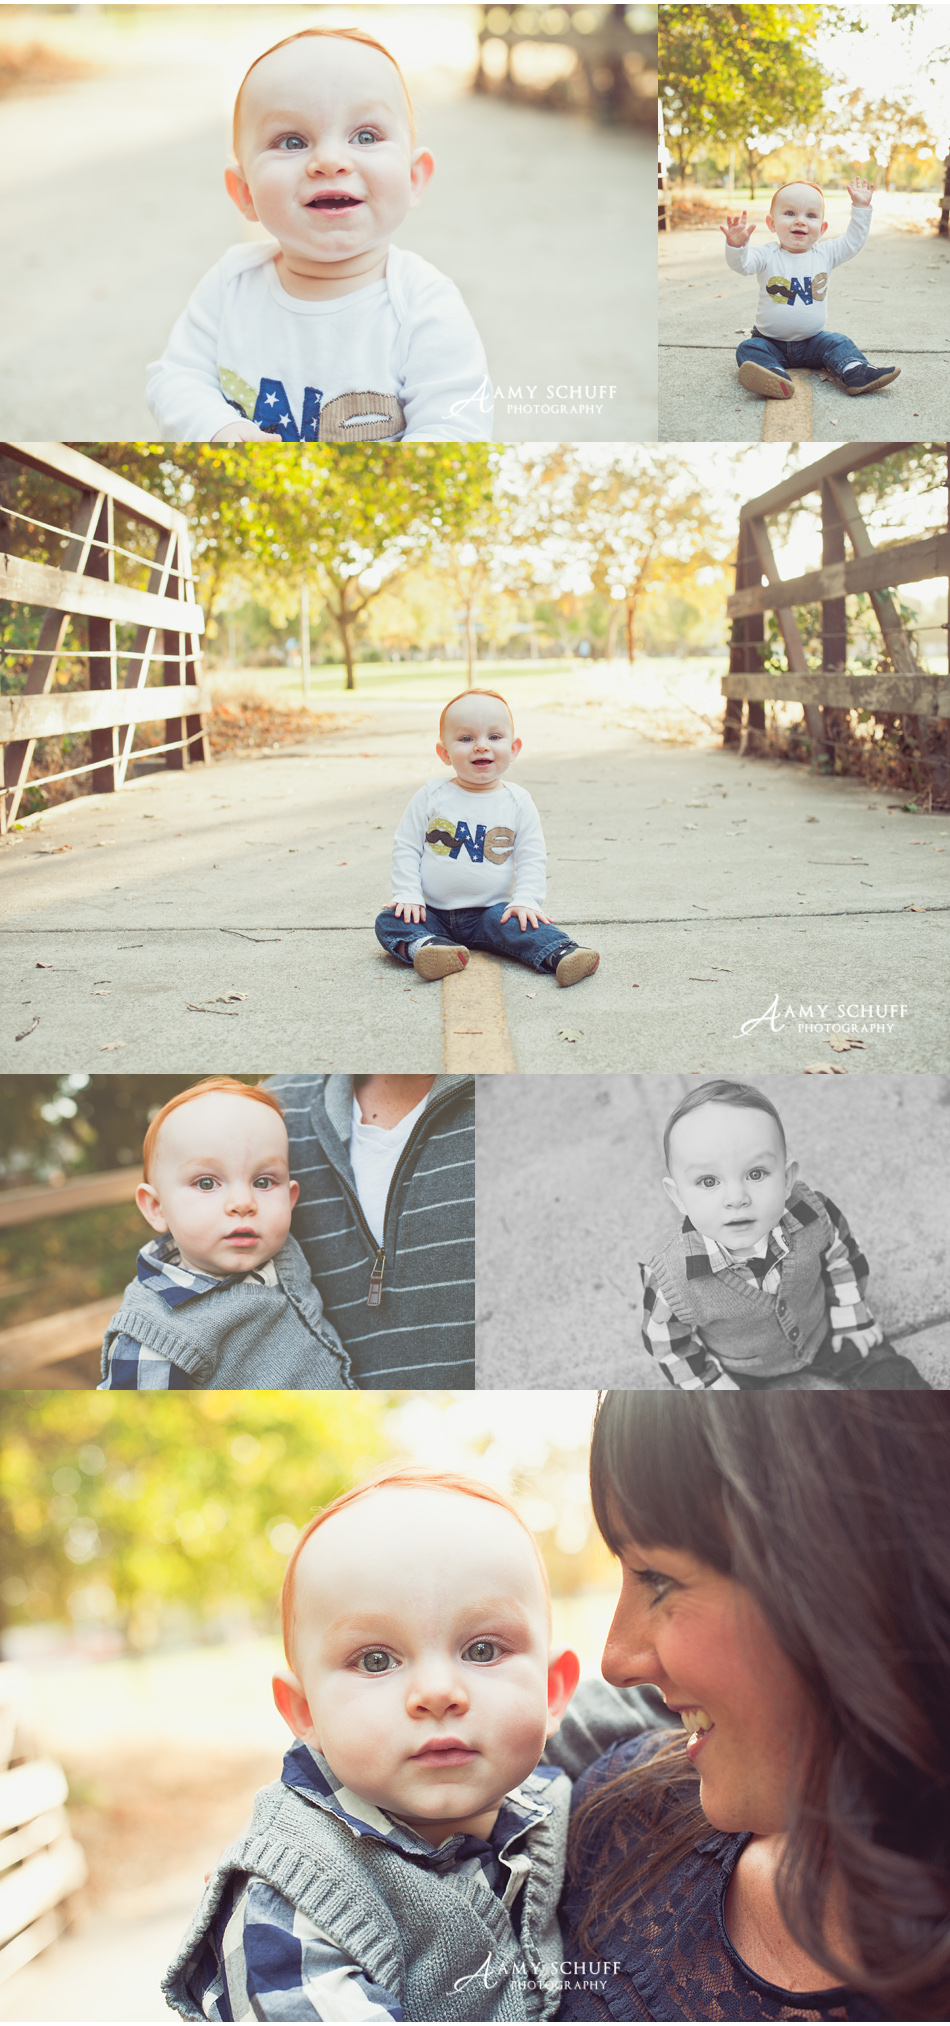 Amy Schuff Photography - Sacramento, CA Family Photographer